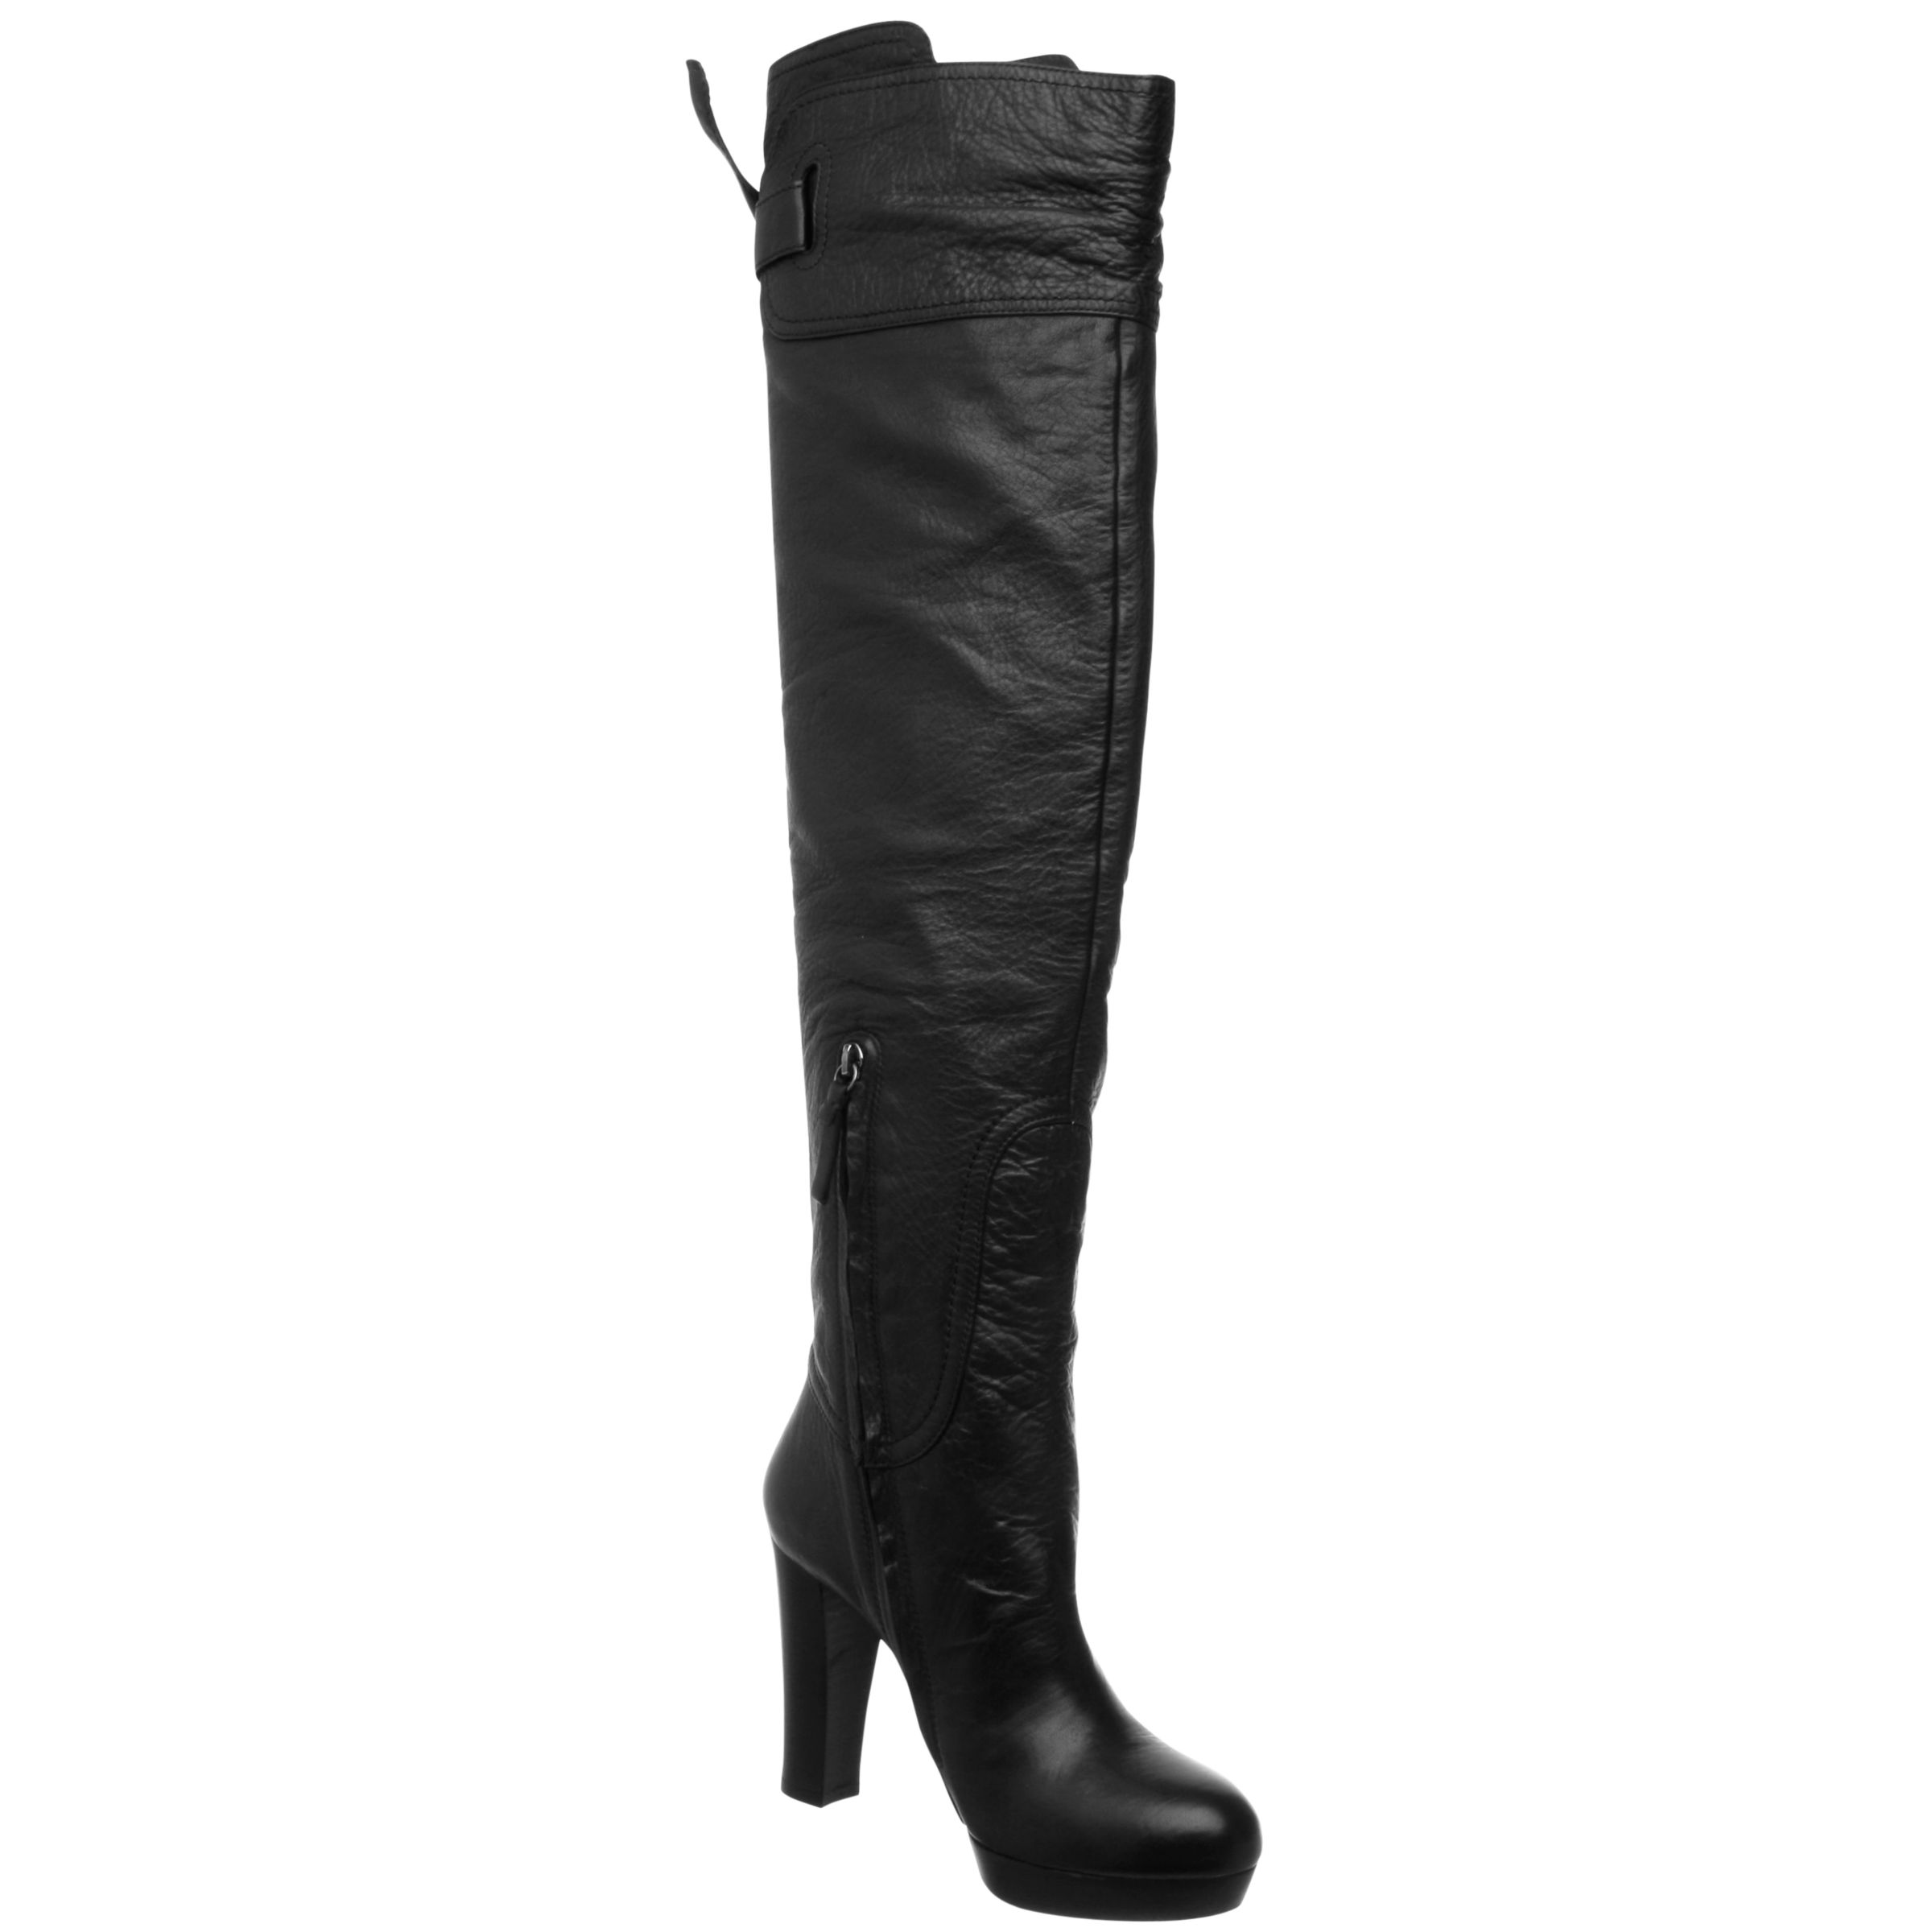 Pied A Terre Riviere Over The Knee Boots, Black at JohnLewis